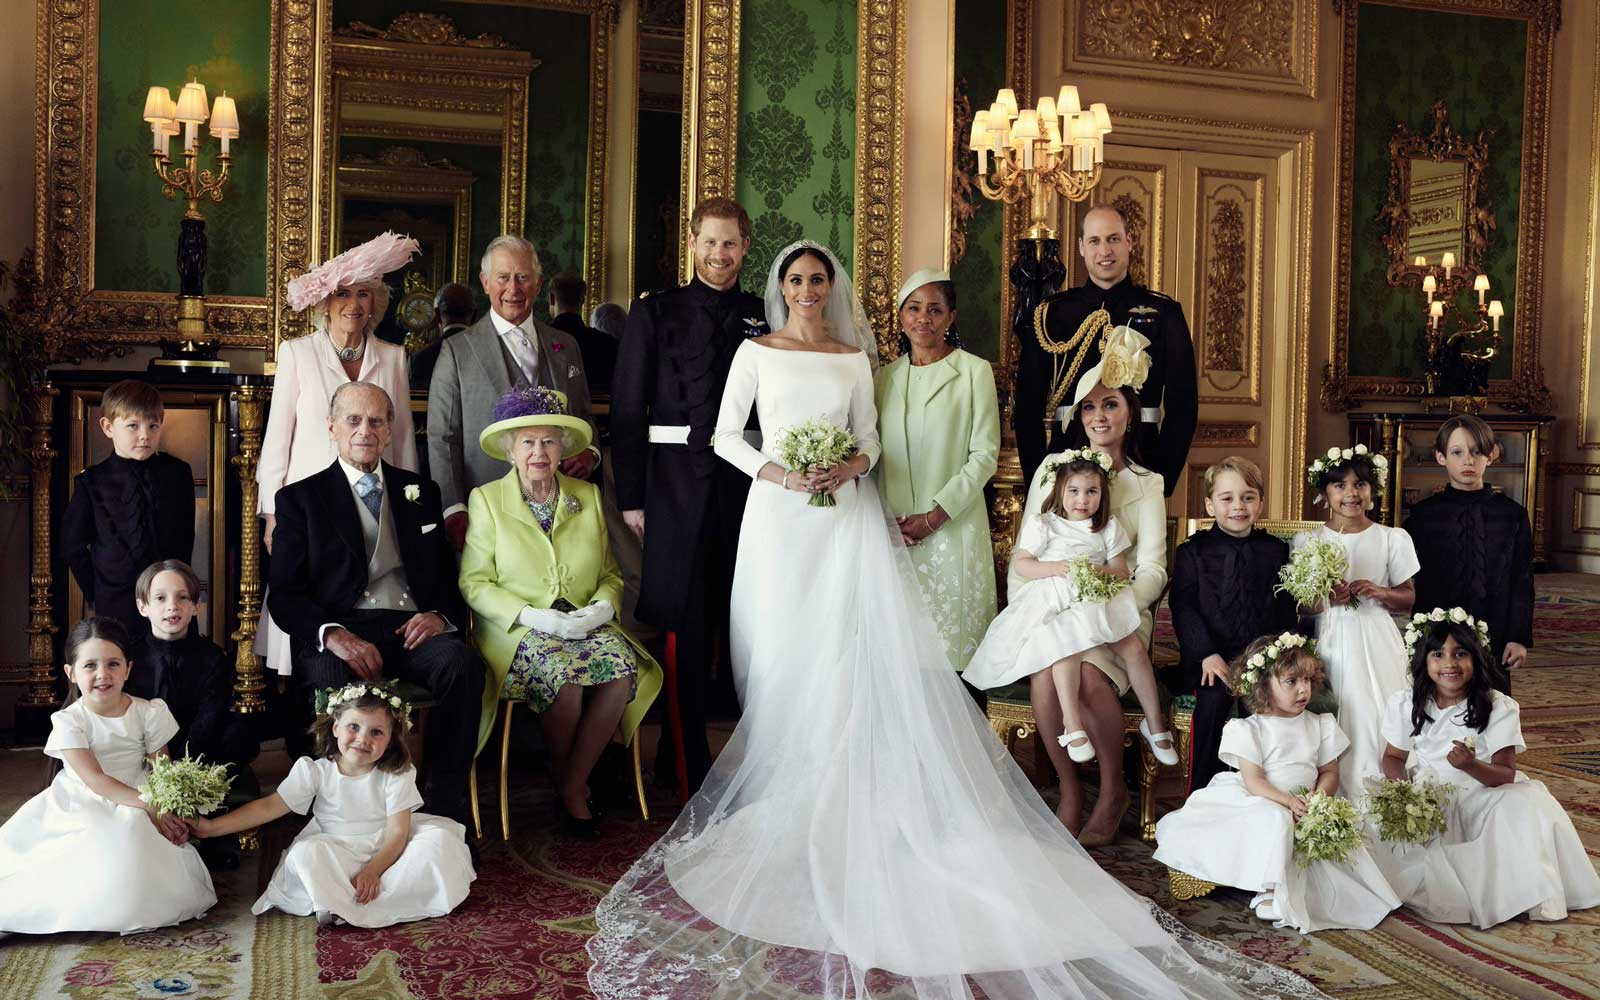 The Duke and Duchess of Sussex have released three official photographs from their Wedding day.